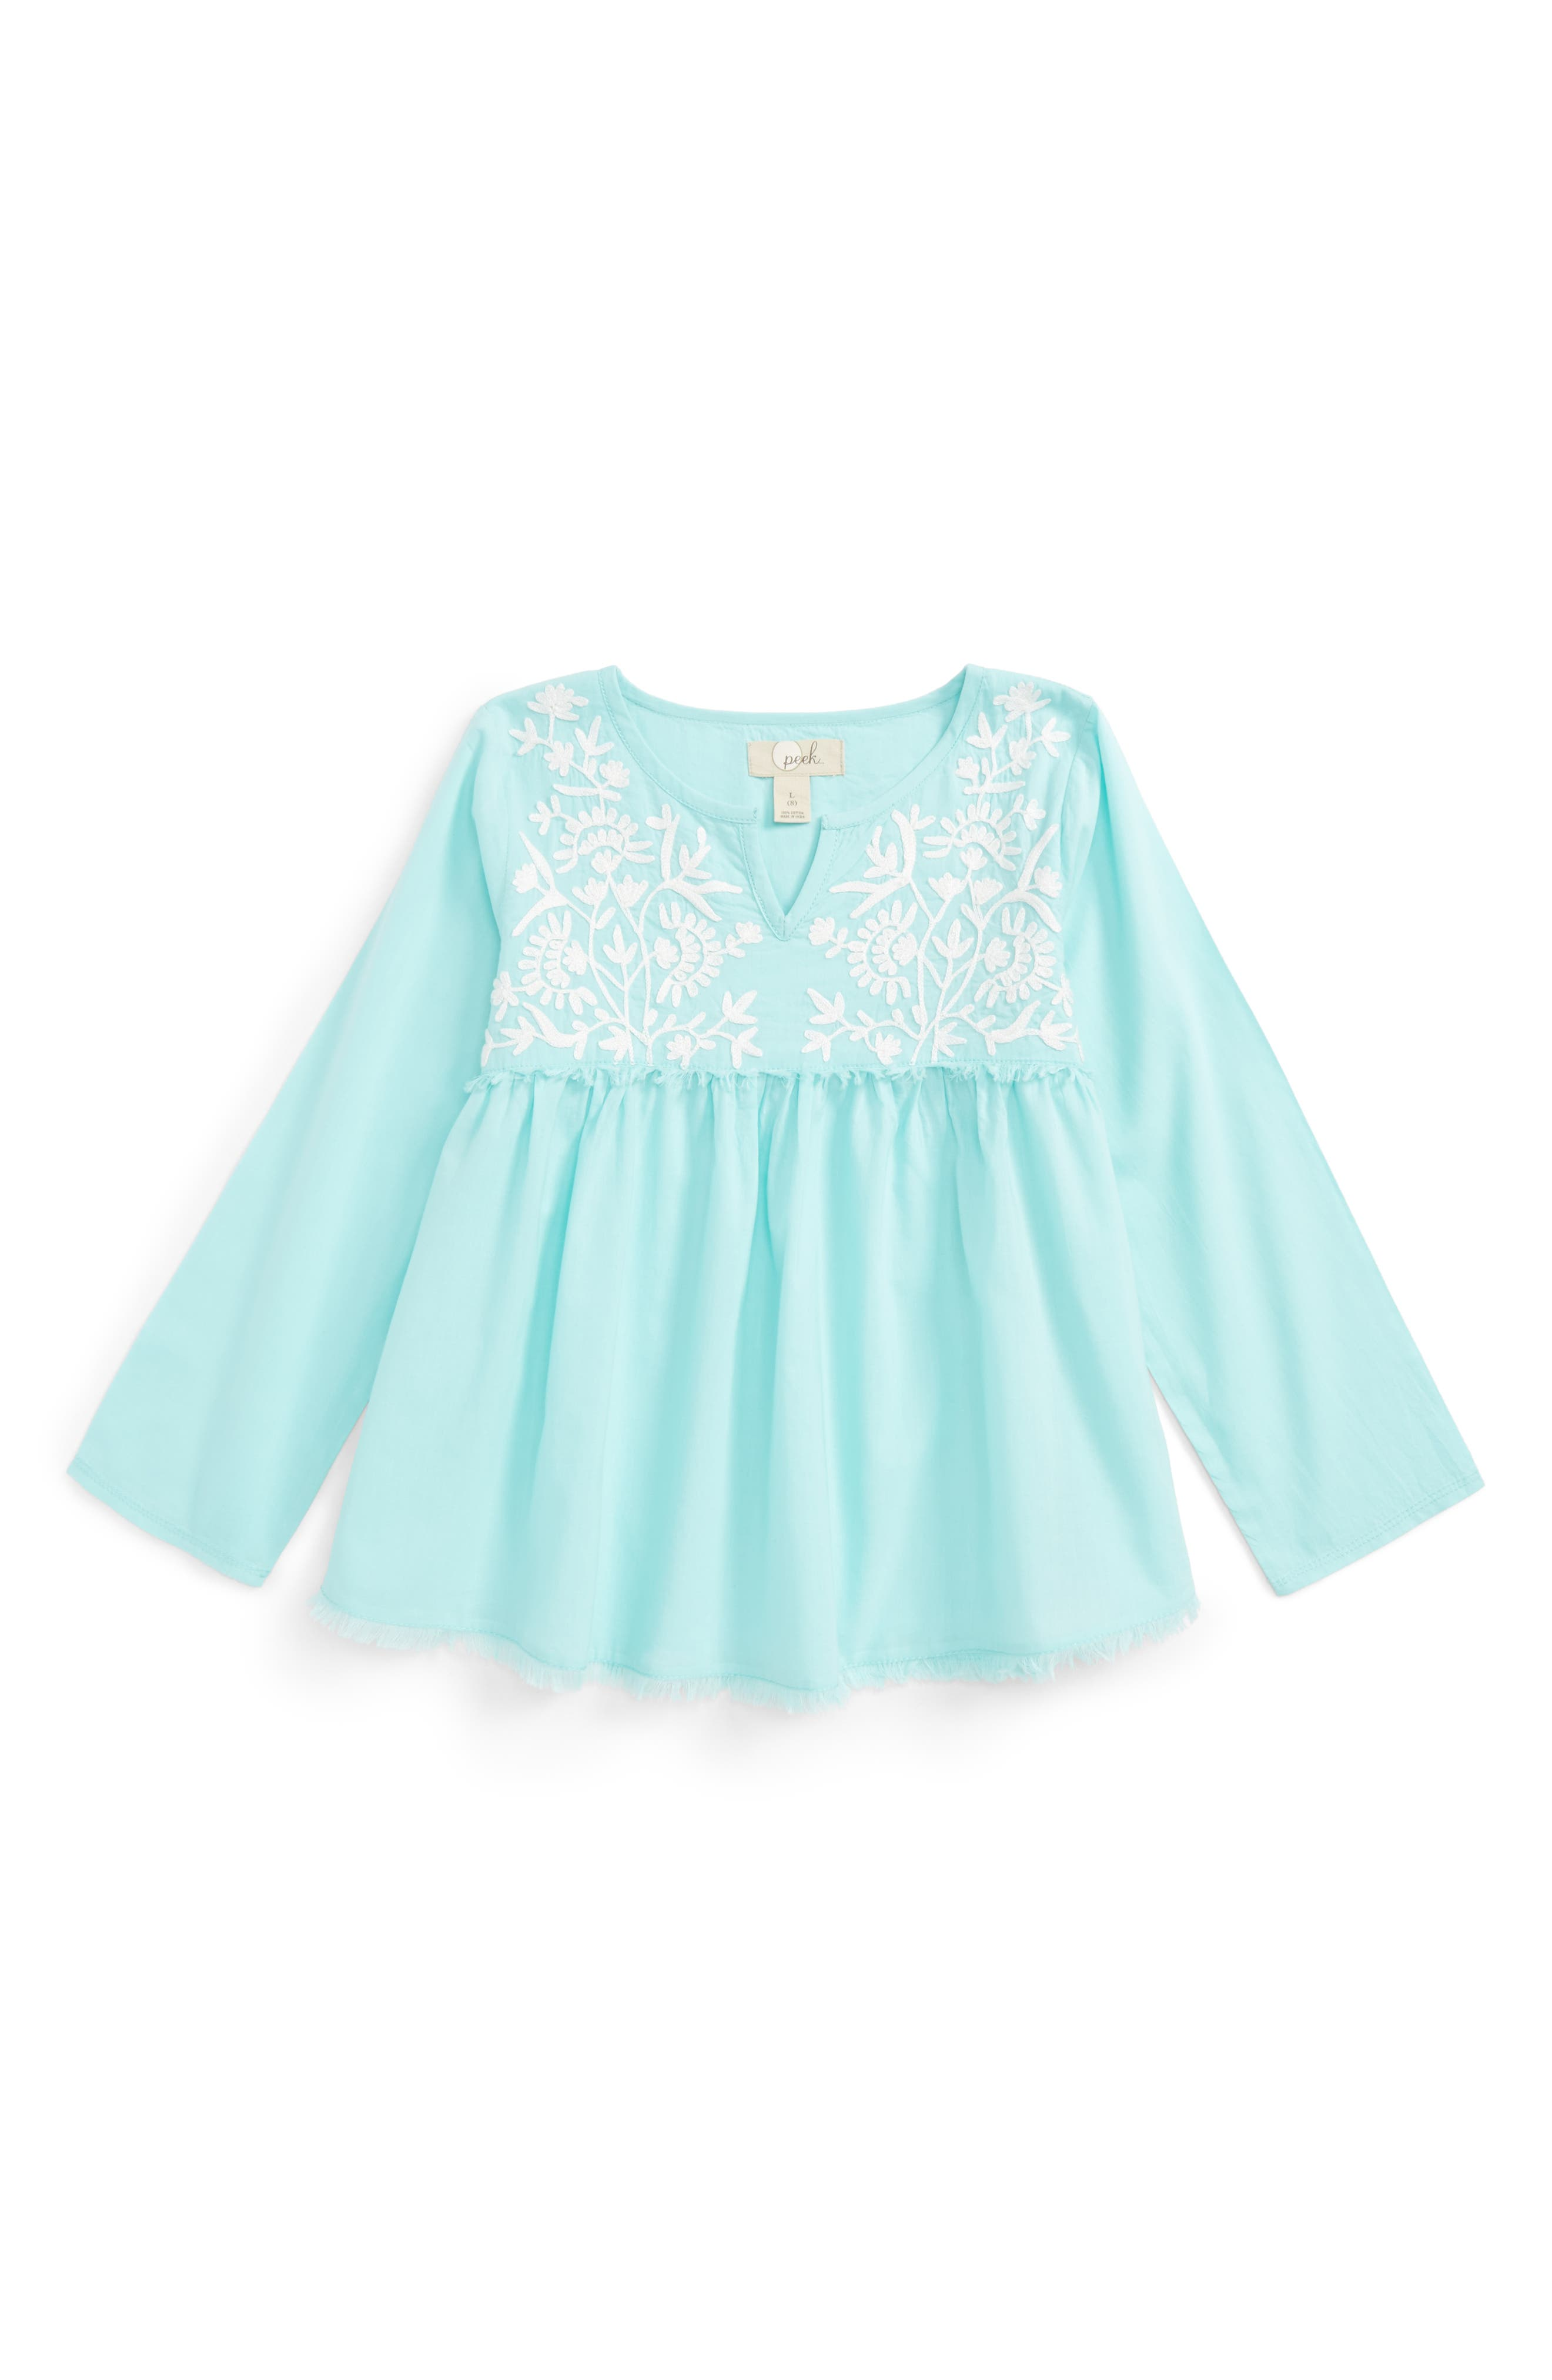 Main Image - Peek Daphne Embroidered Top (Toddler Girls, Little Girls & Big Girls)